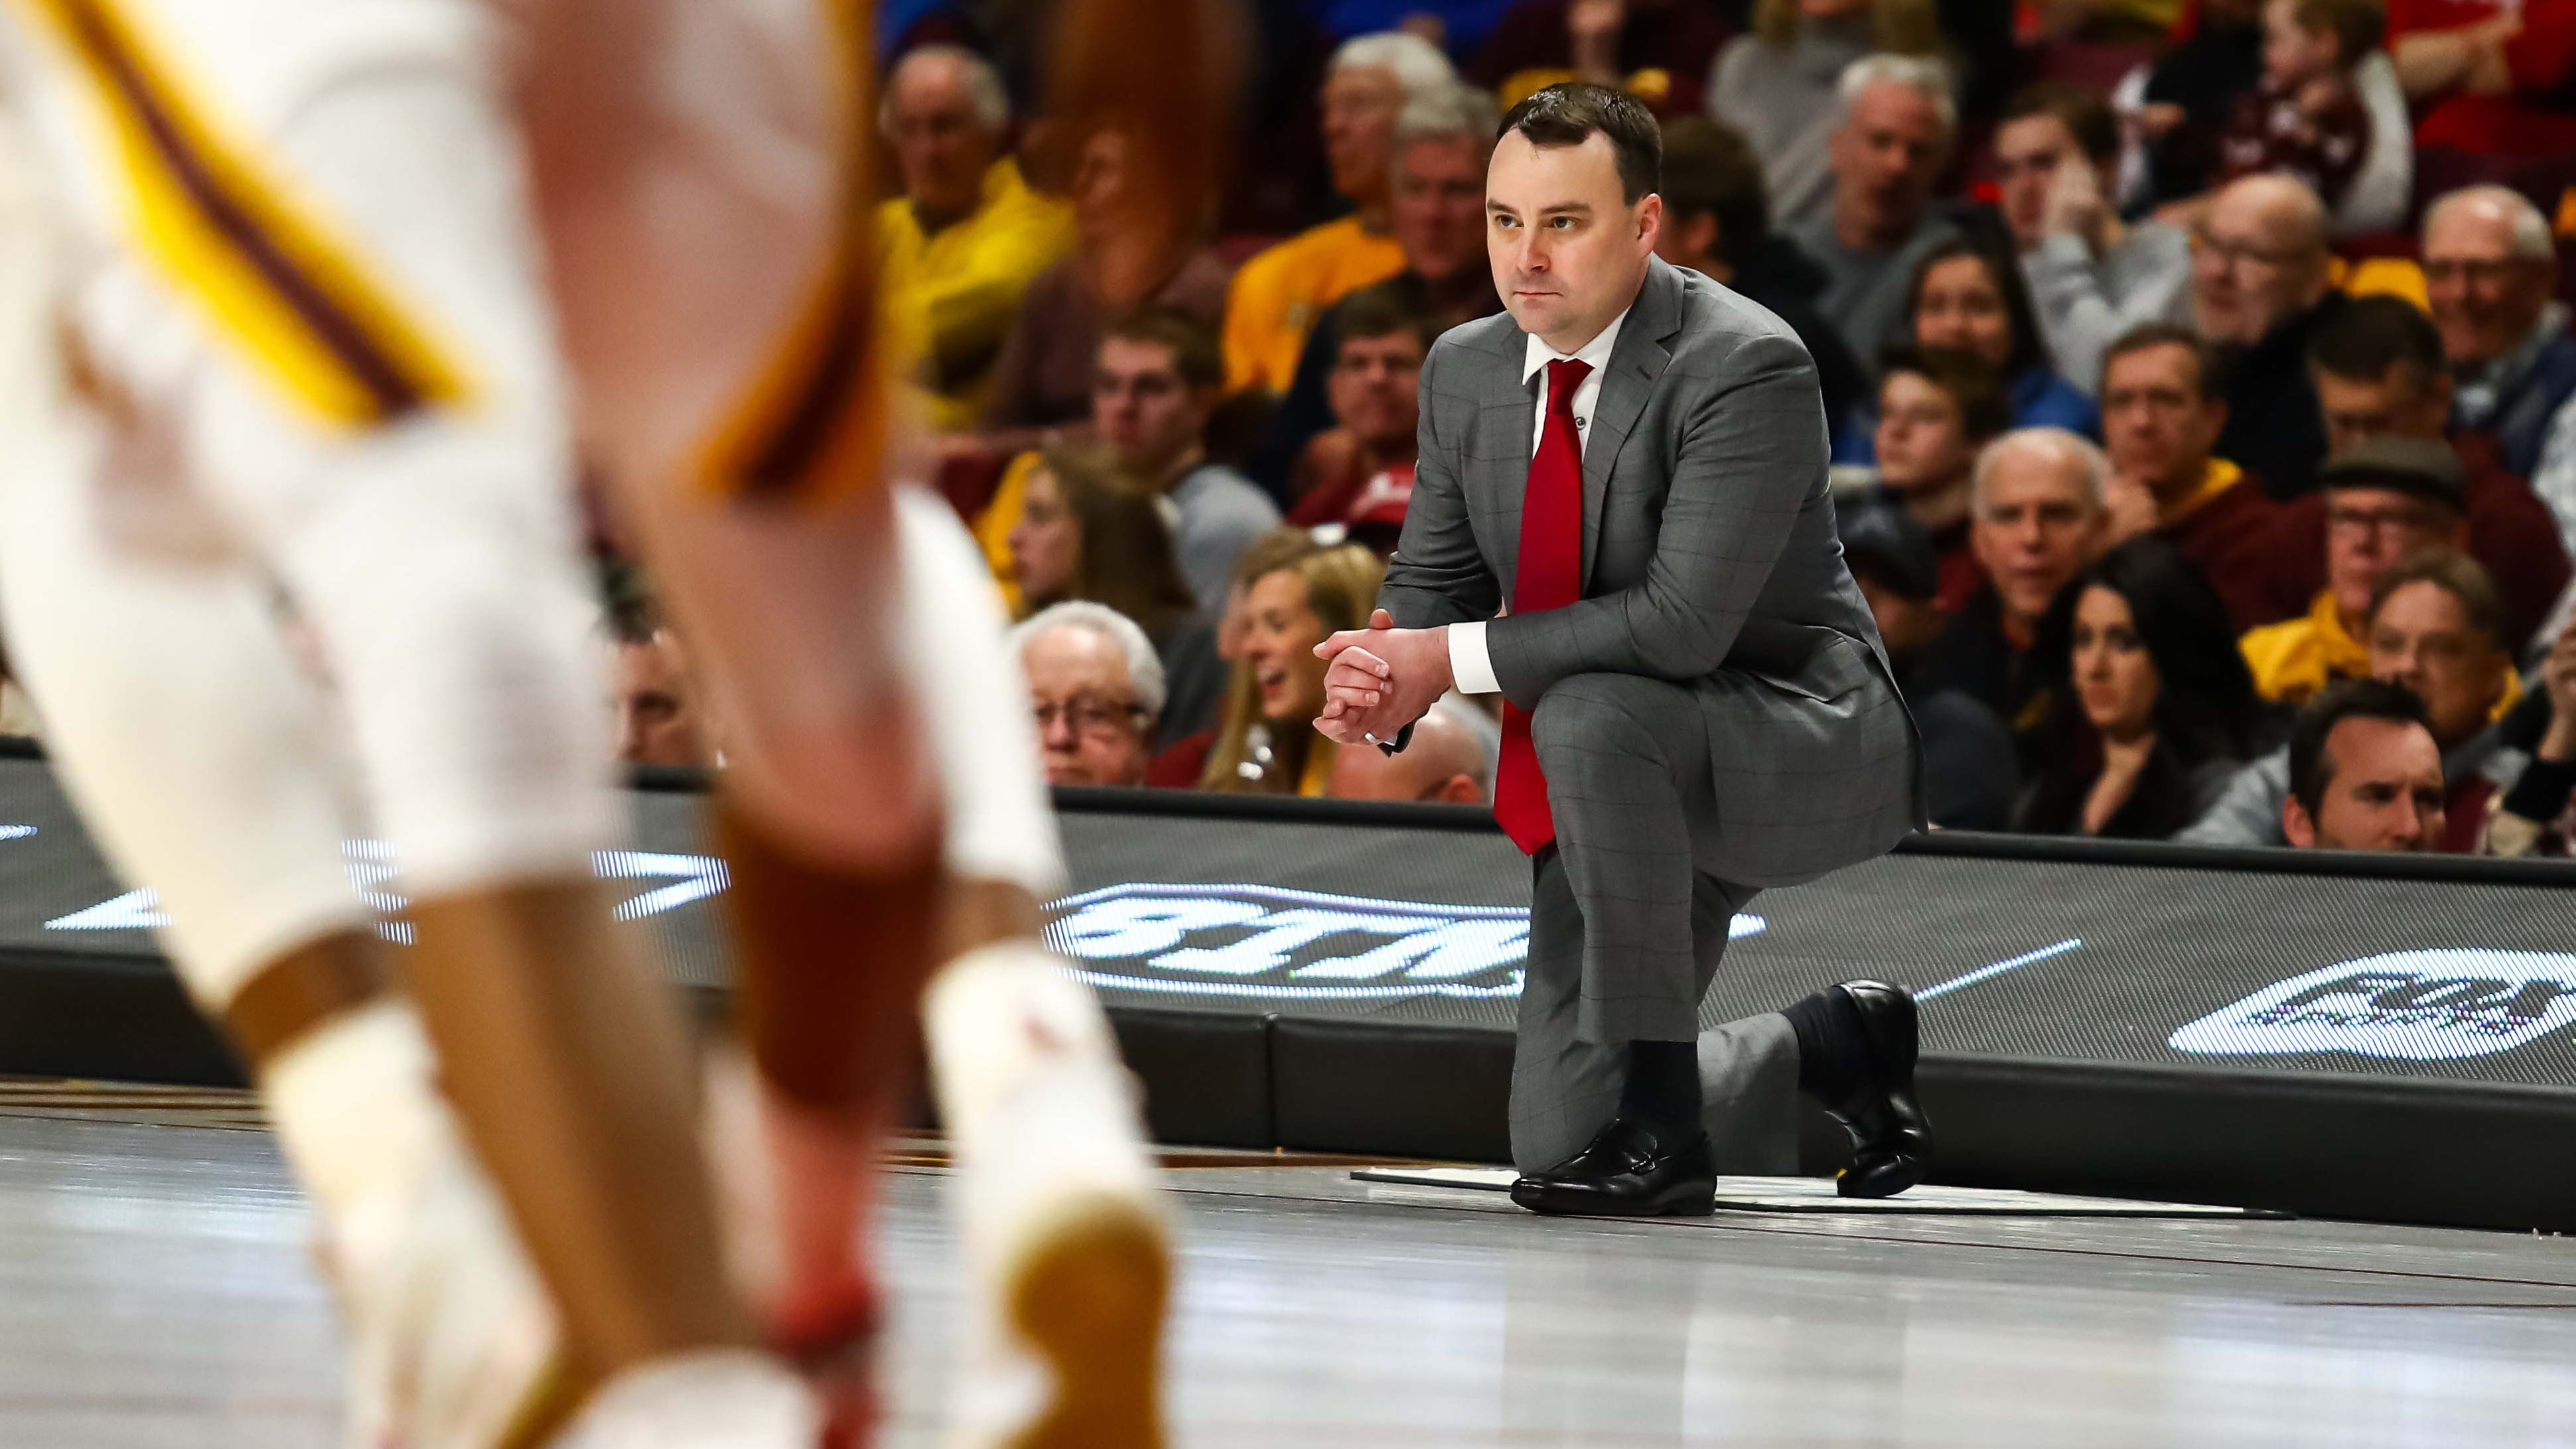 Indiana Hoosiers coach Archie Miller looks on in the second half against the Minnesota Golden Gophers at Williams Arena. The Minnesota Golden Gophers defeated the Indiana Hoosiers 84-63.